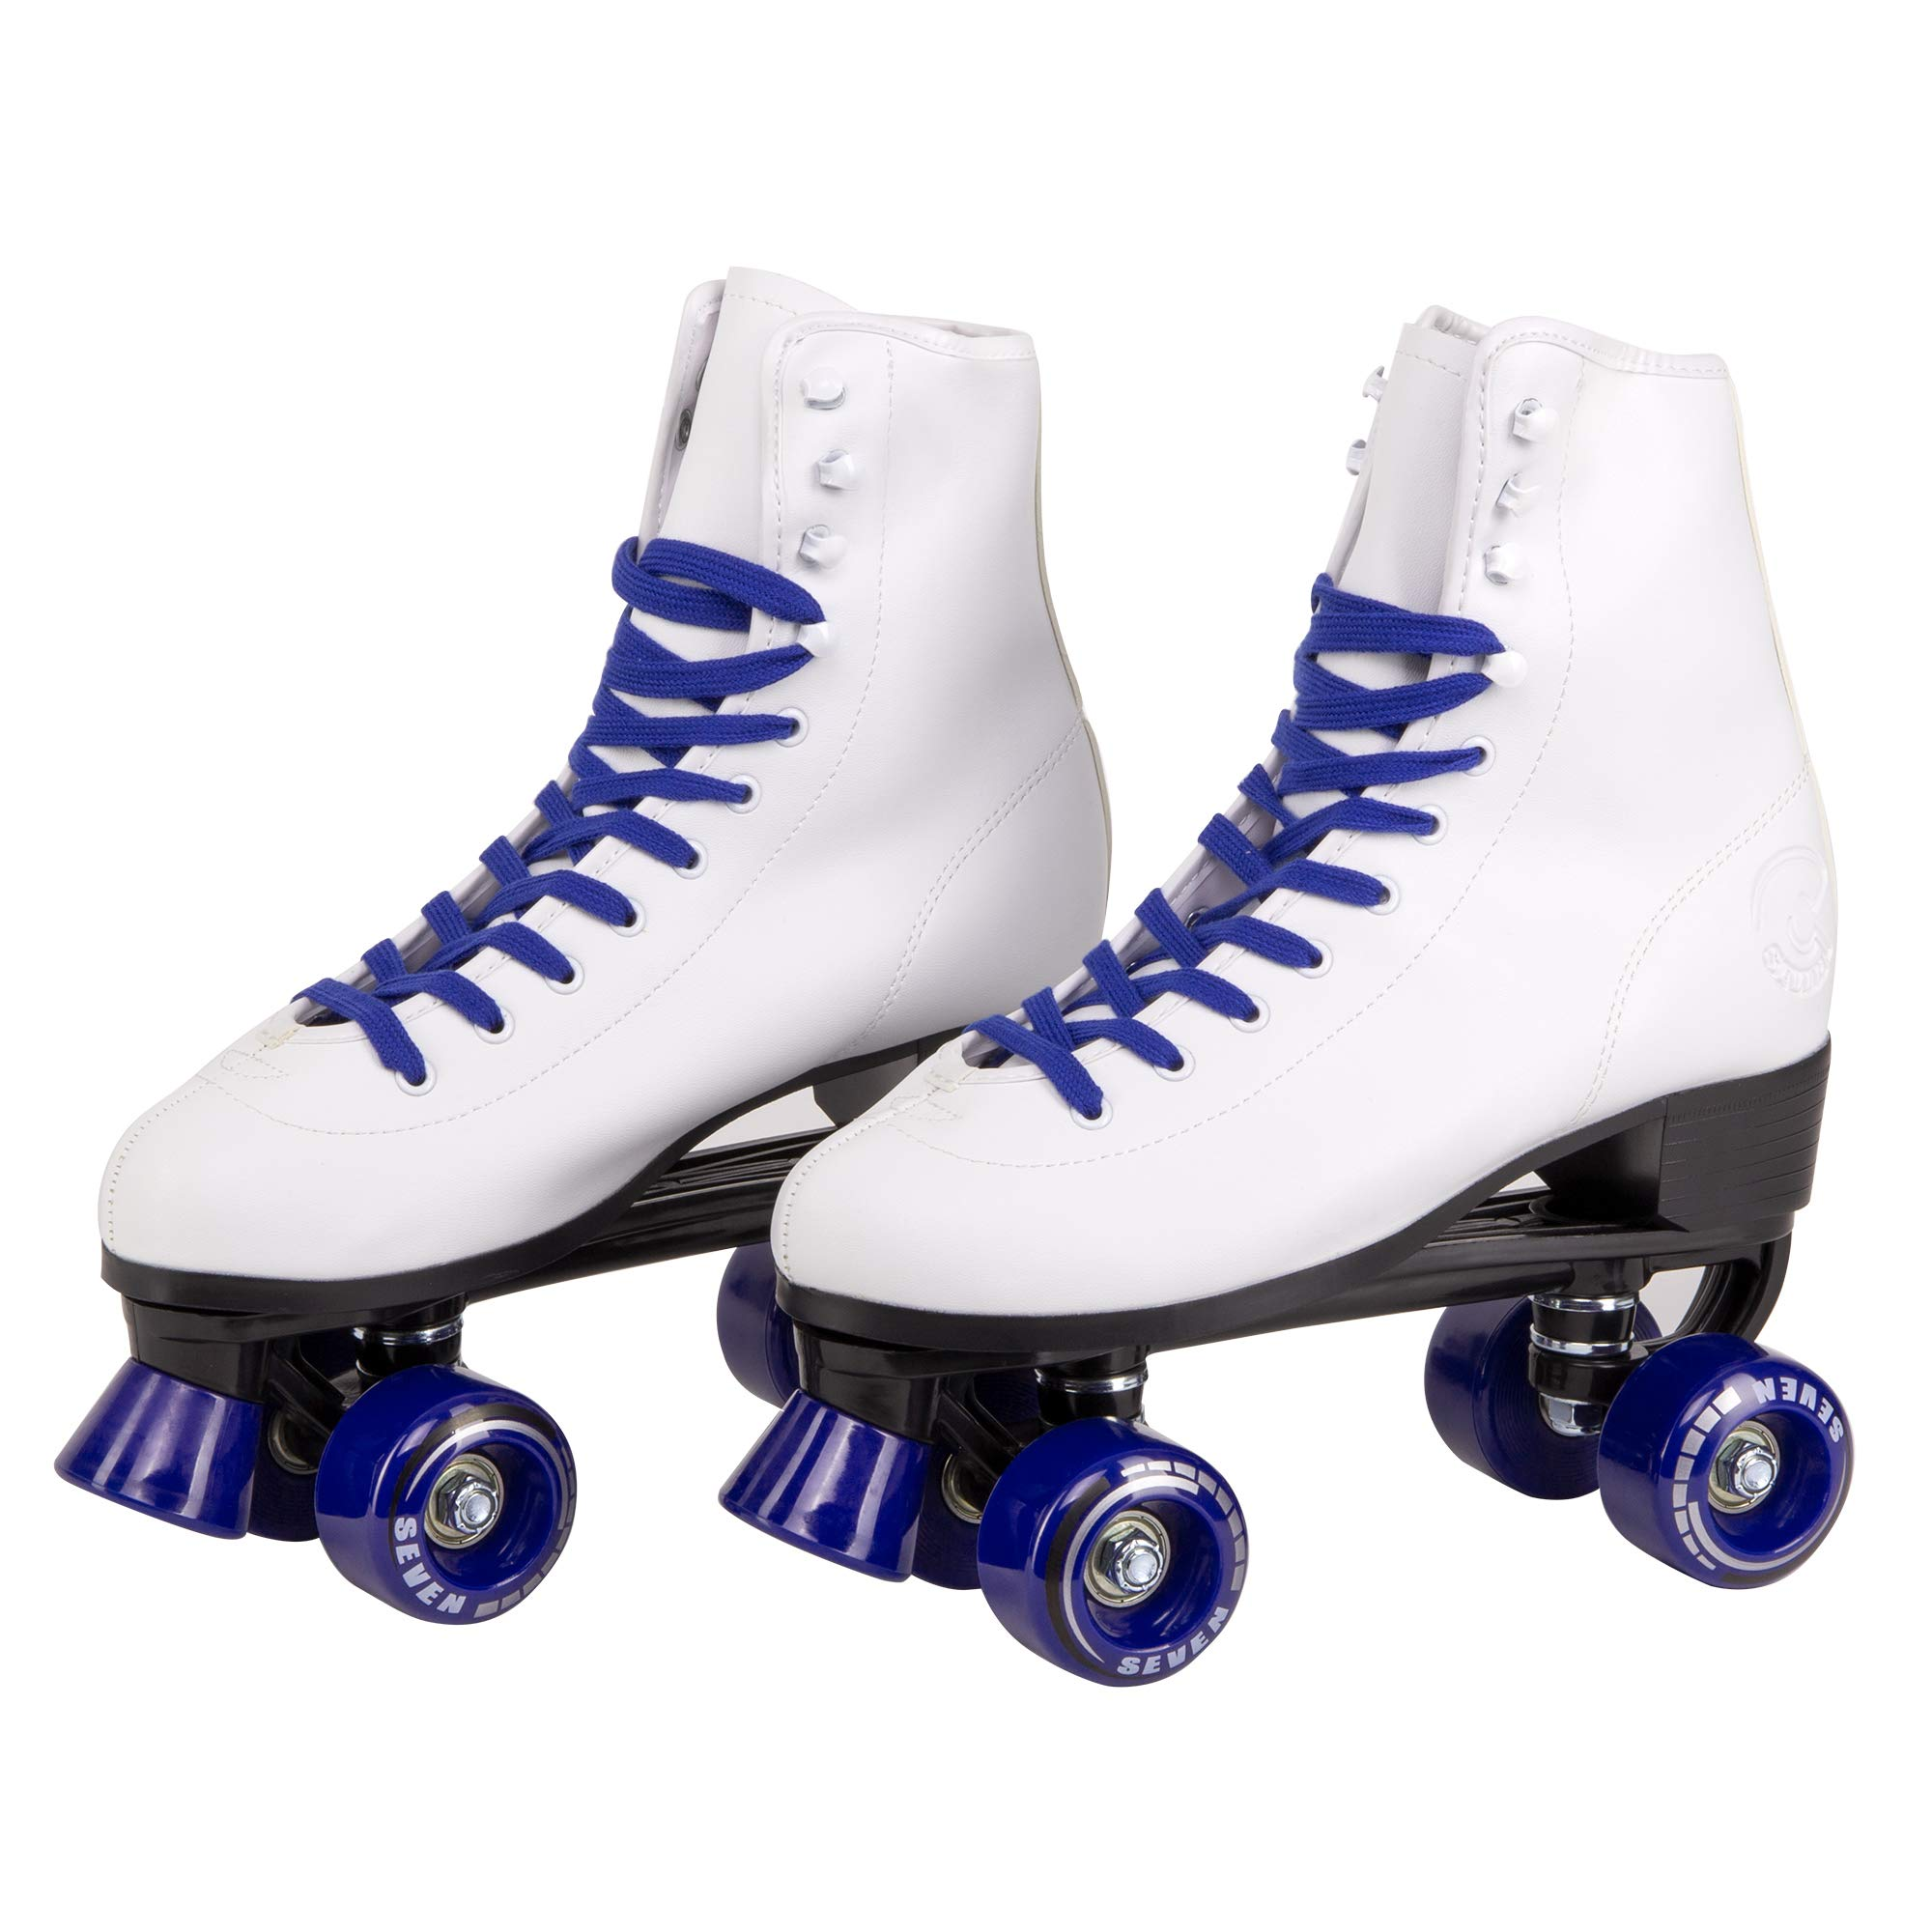 C7 Classic Roller Skates | Retro Soft Boot with Faux Leather | Speedy Quad Style for Men, Women and Kids (Dark Blue/Men's 7 / Women's 8)